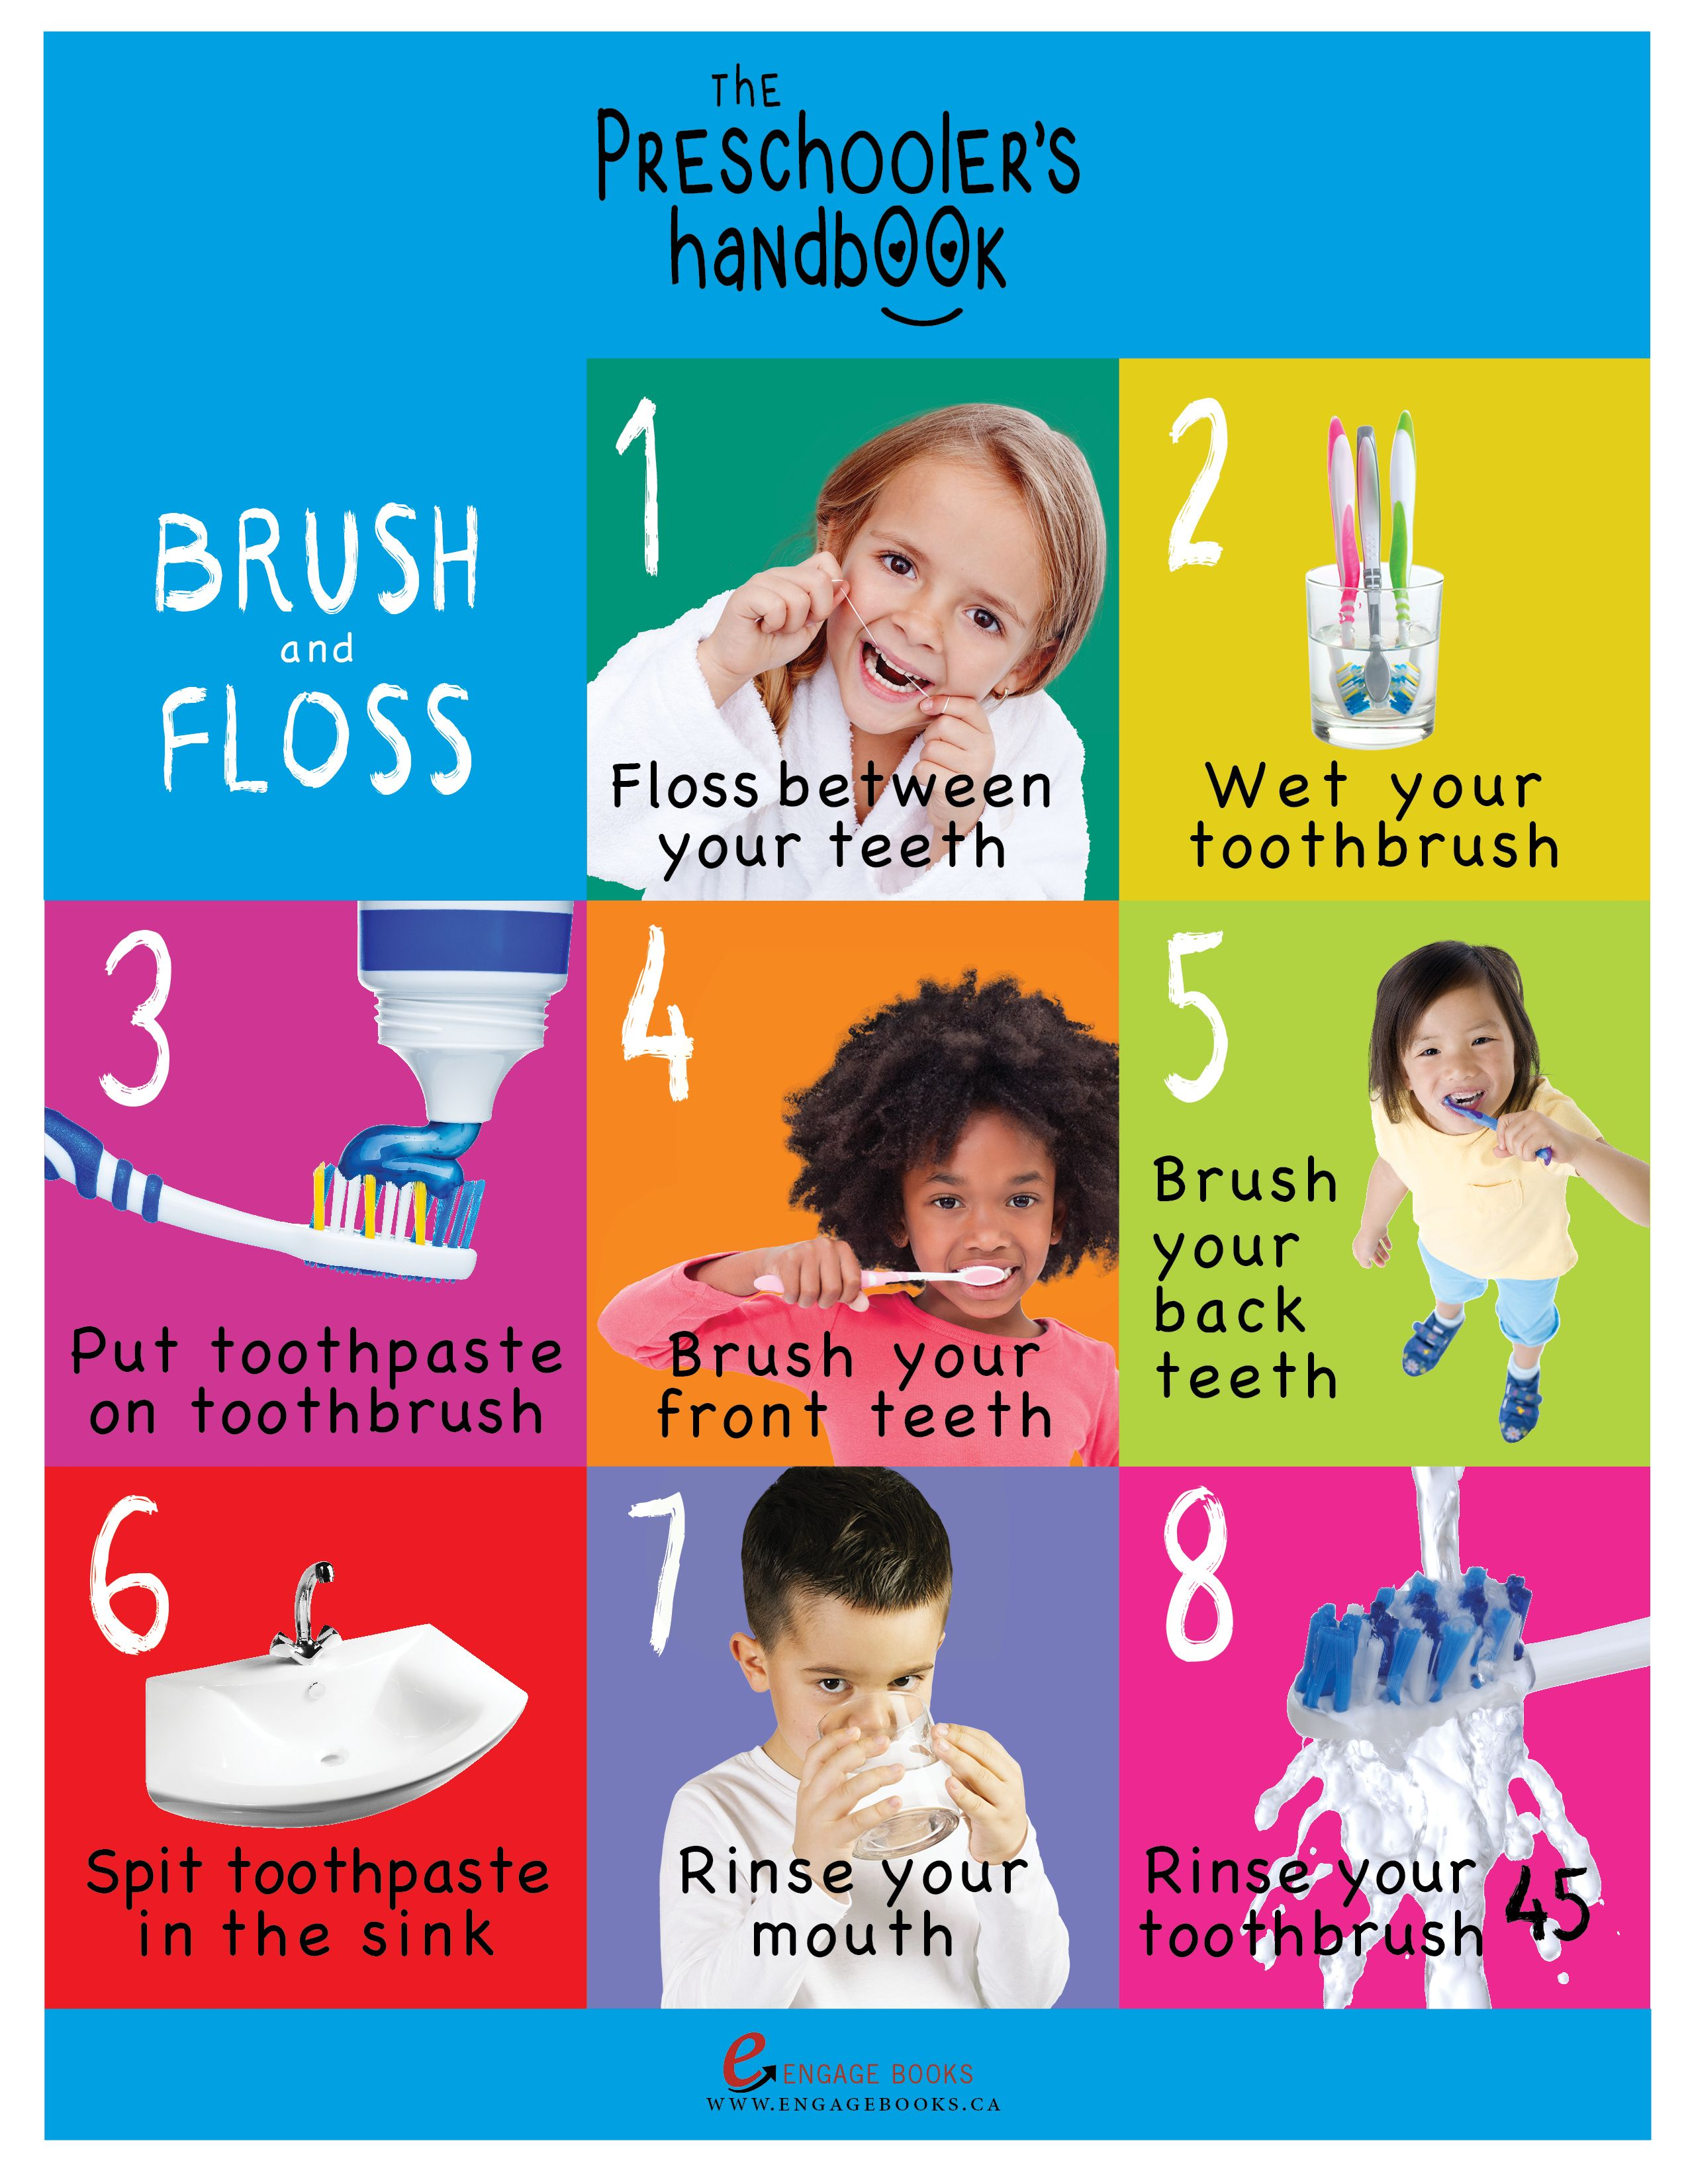 Free Printable Teeth Brushing Steps For Preschoolers From